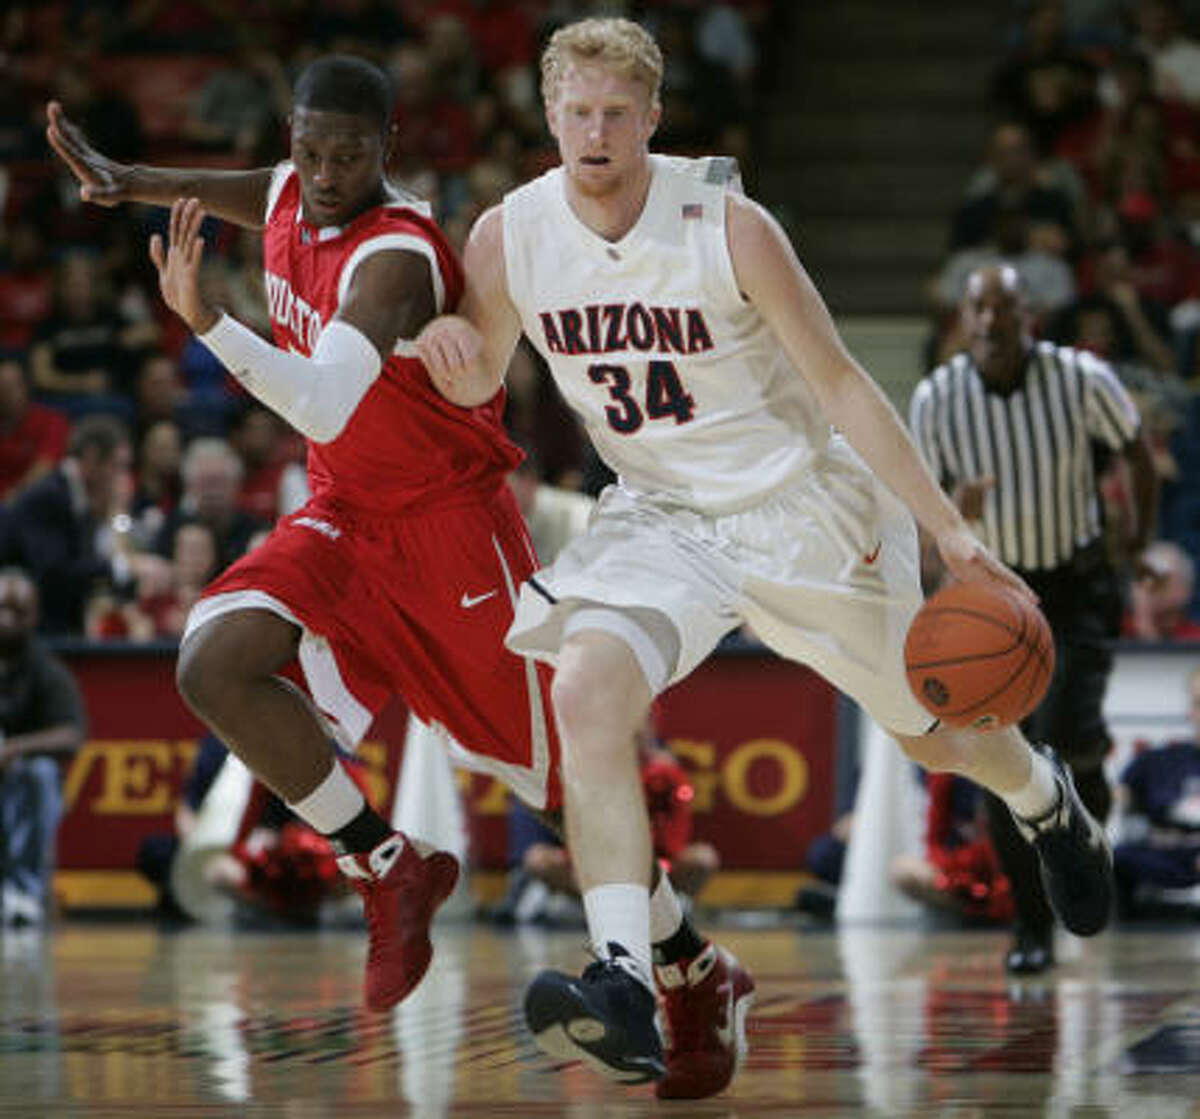 Houston's Aubrey Coleman was called for a flagarant foul on Arizona's Chase Budinger.